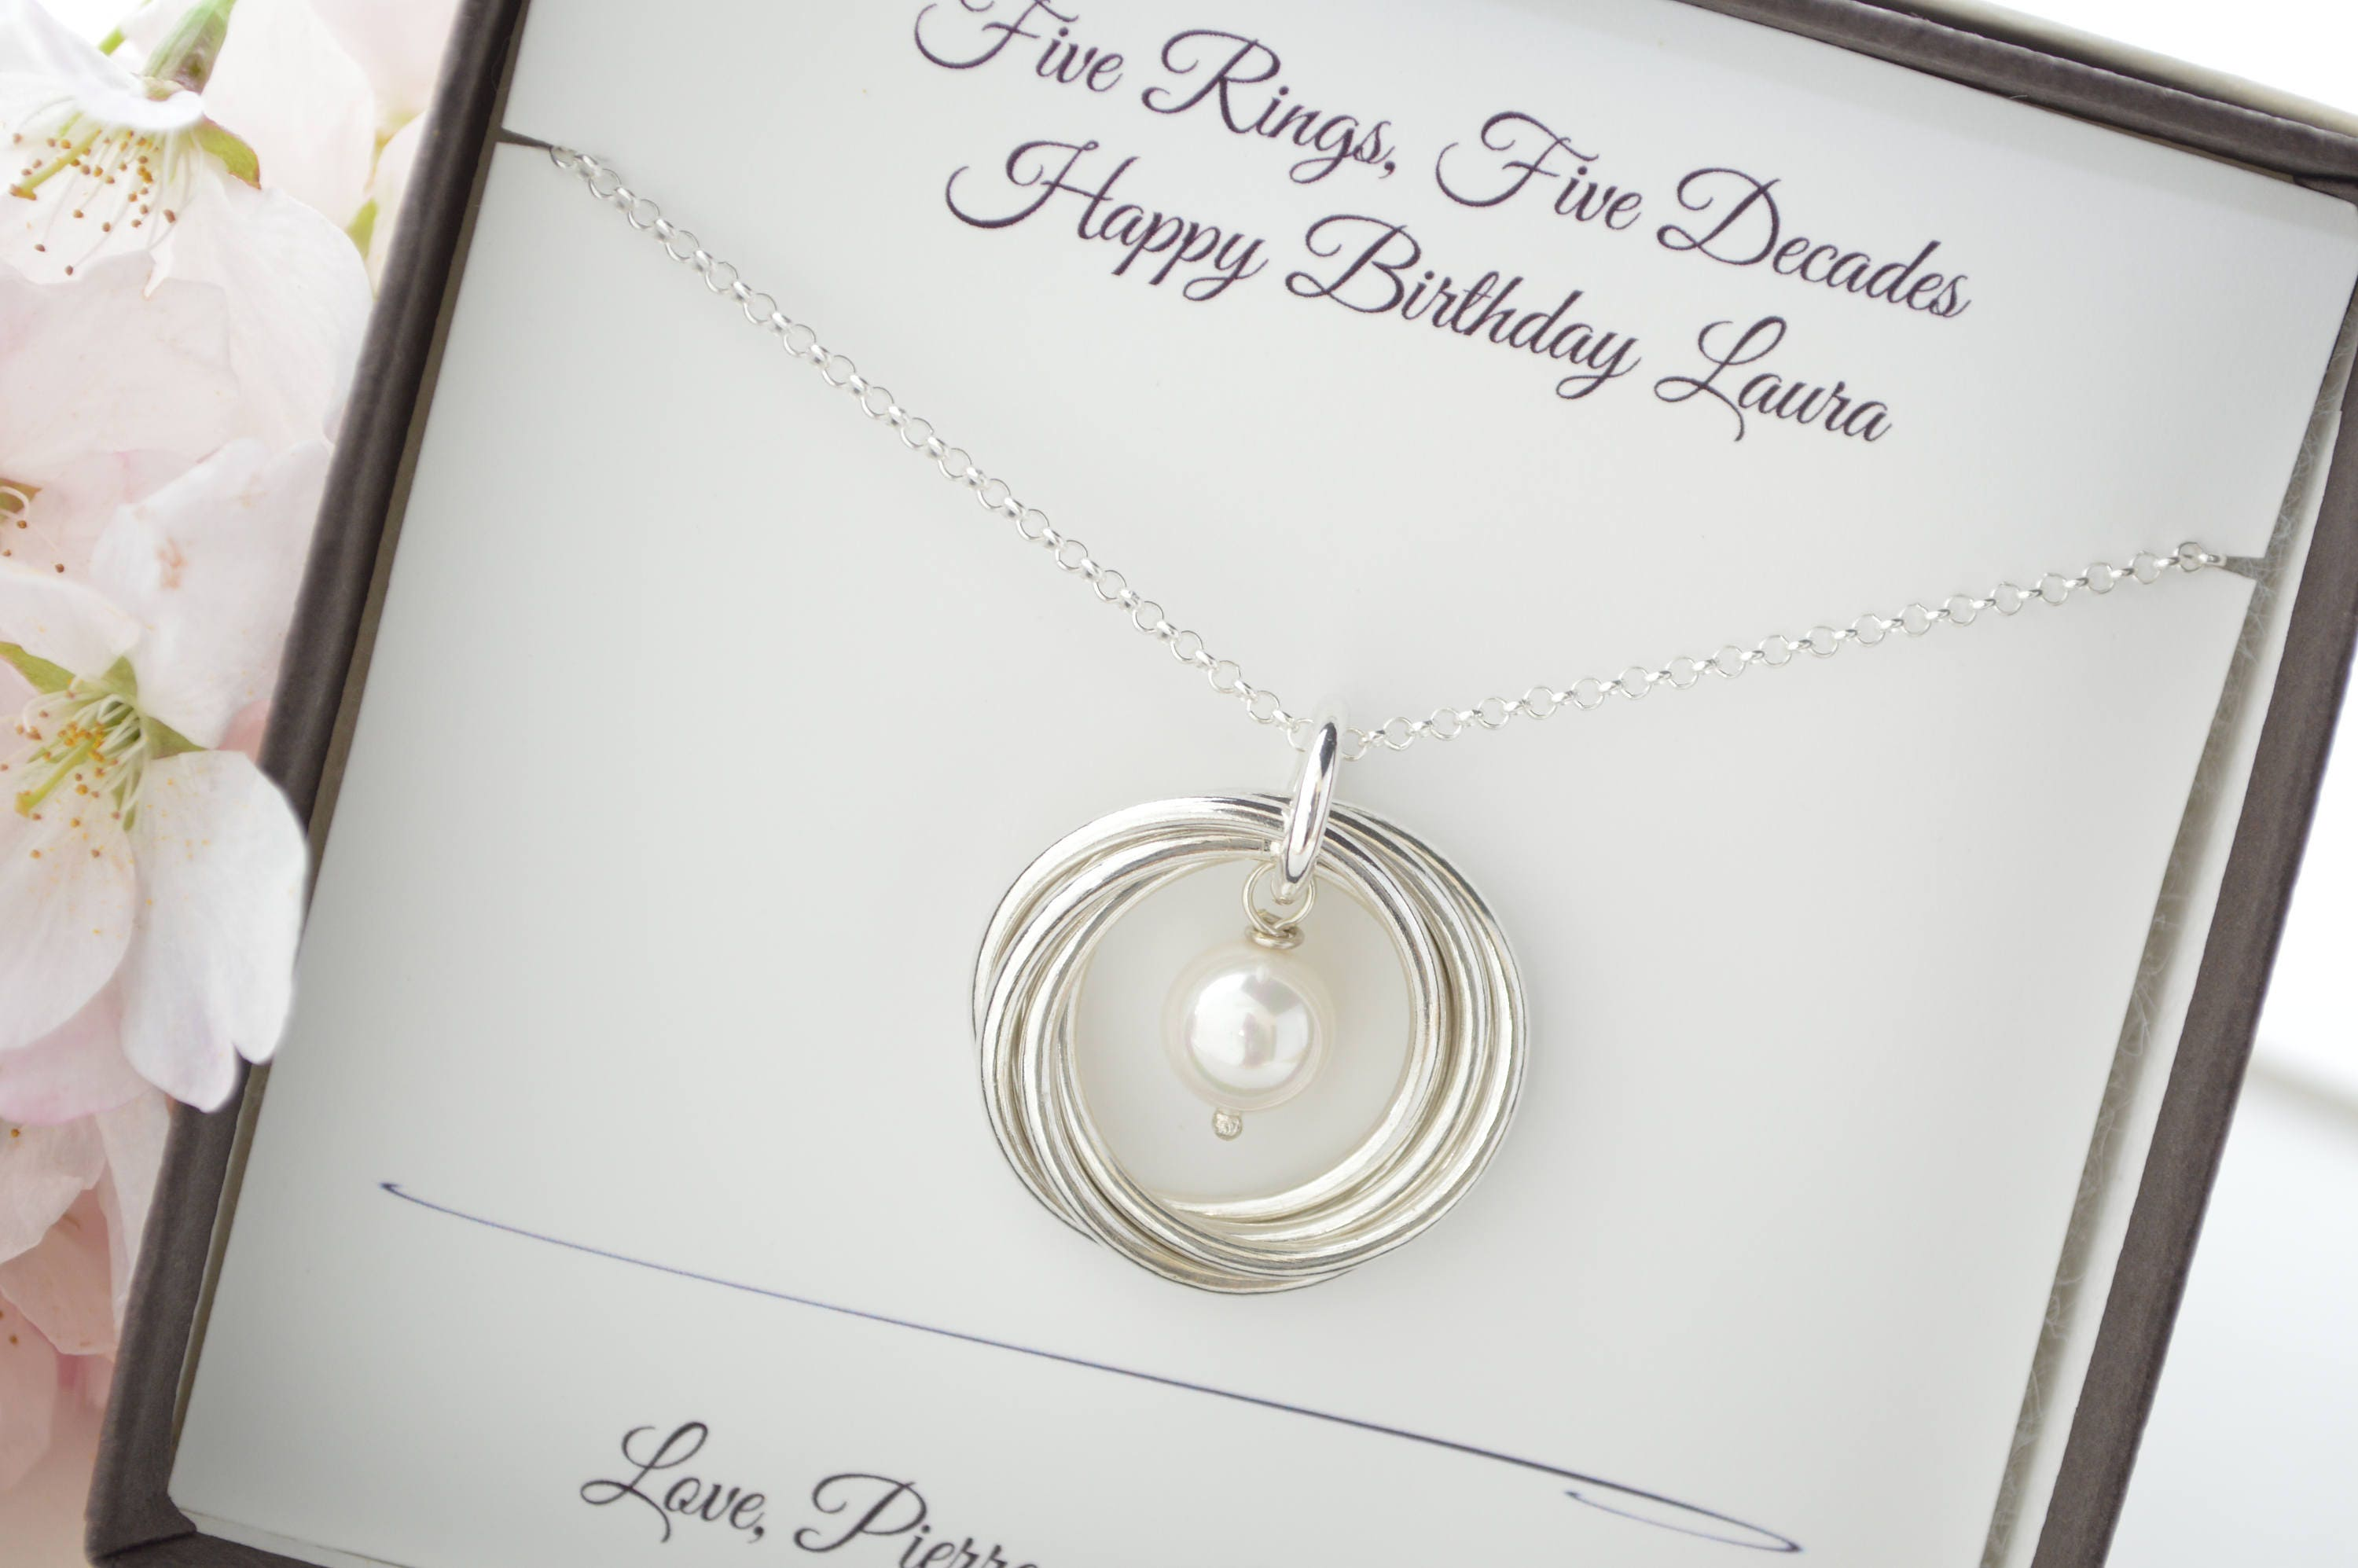 Gifts For 50th Wedding Anniversary For Friends: 50th Birthday Gift For Mom Necklace, 5 Best Friends